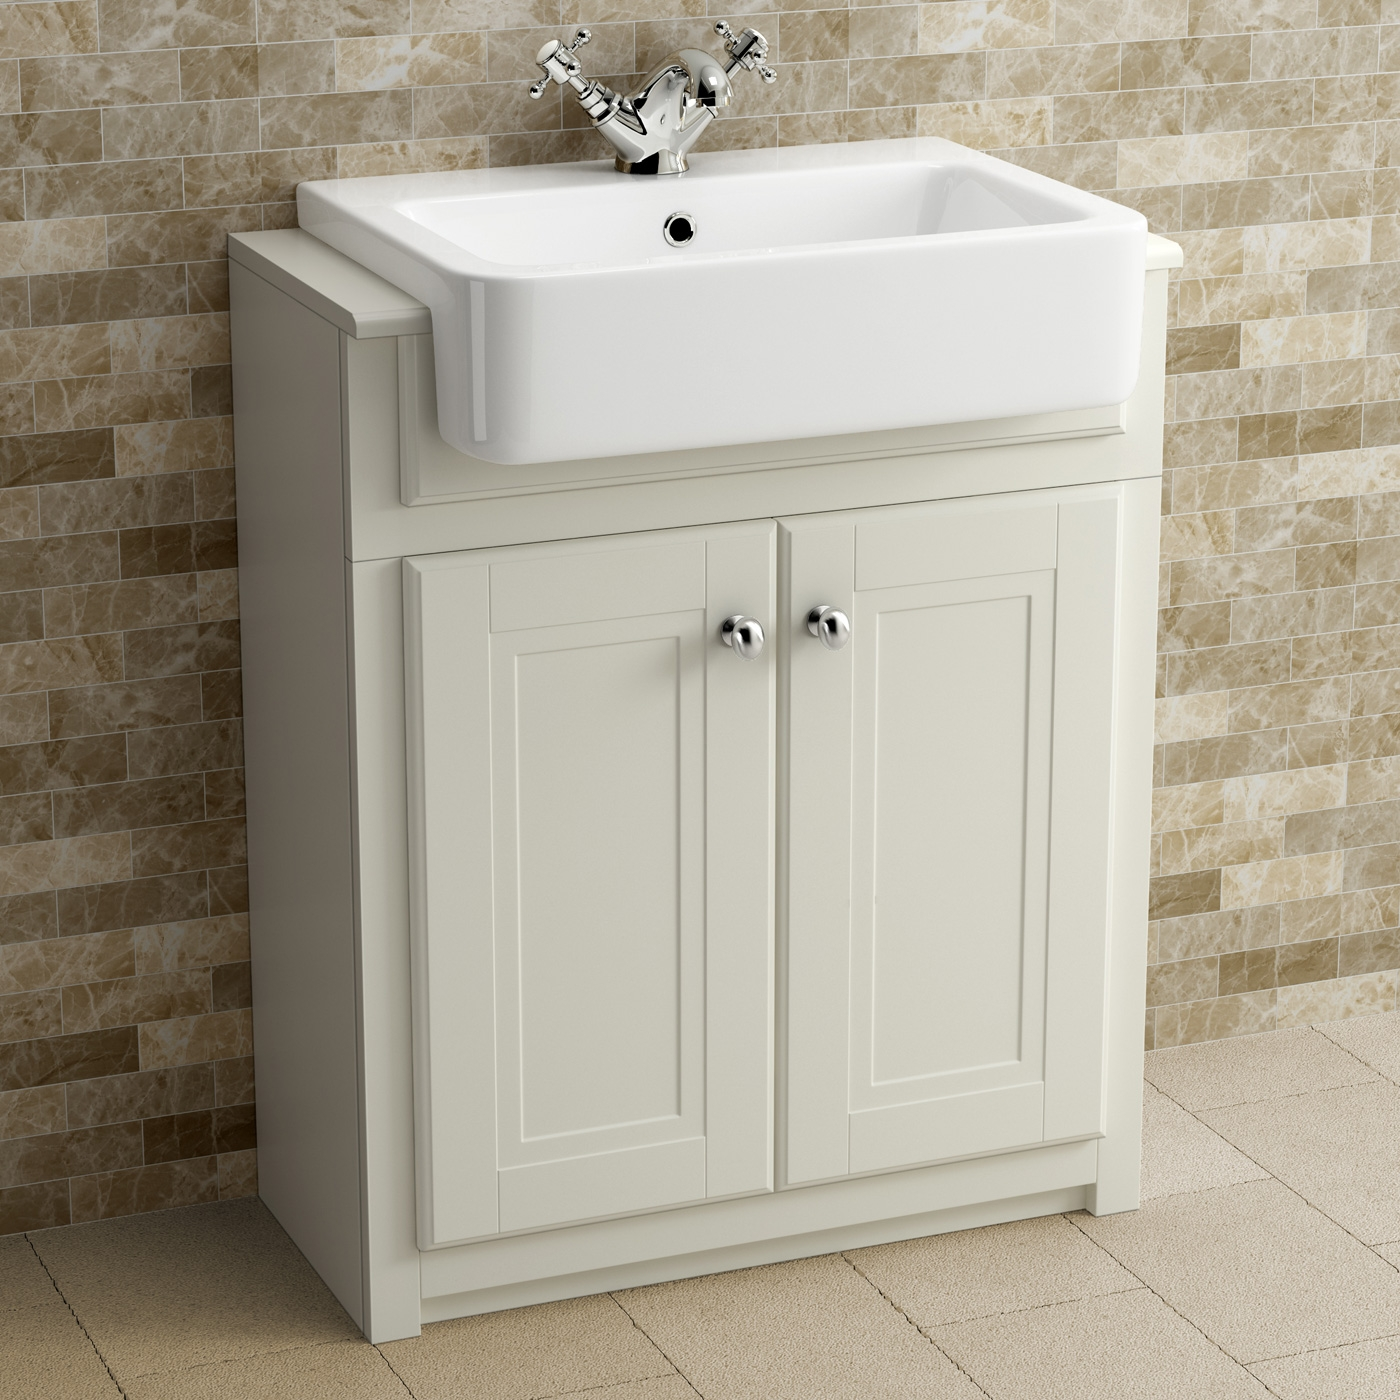 Basin Vanity Unit Clotted